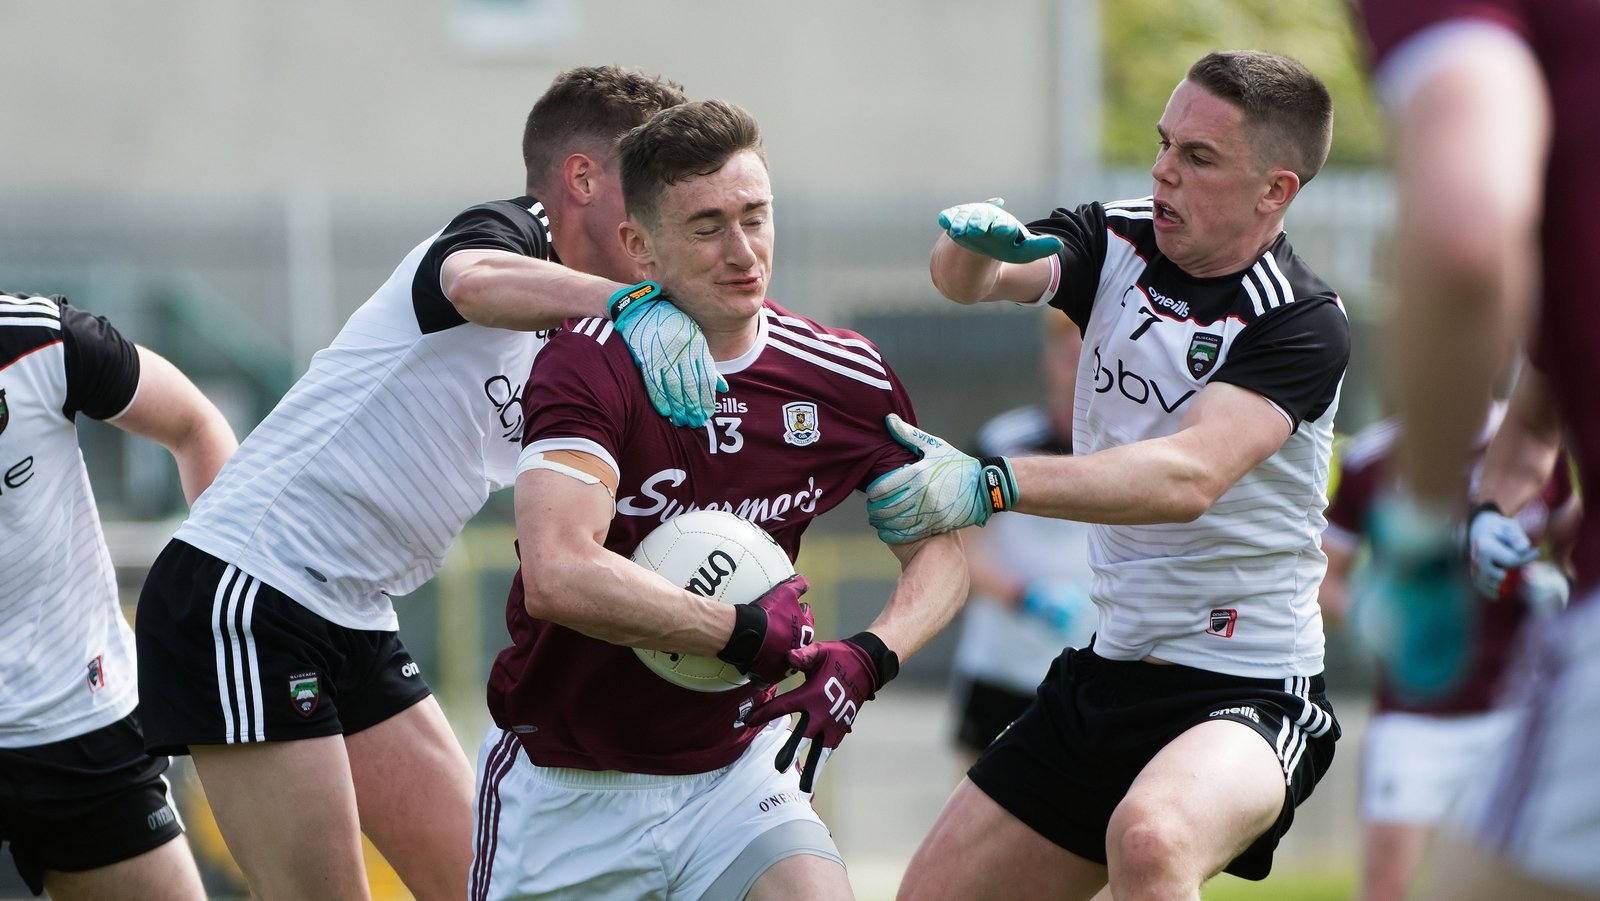 Image - Galway have had a comfortable Connacht SFC campaign thus far with wins over London and Sligo